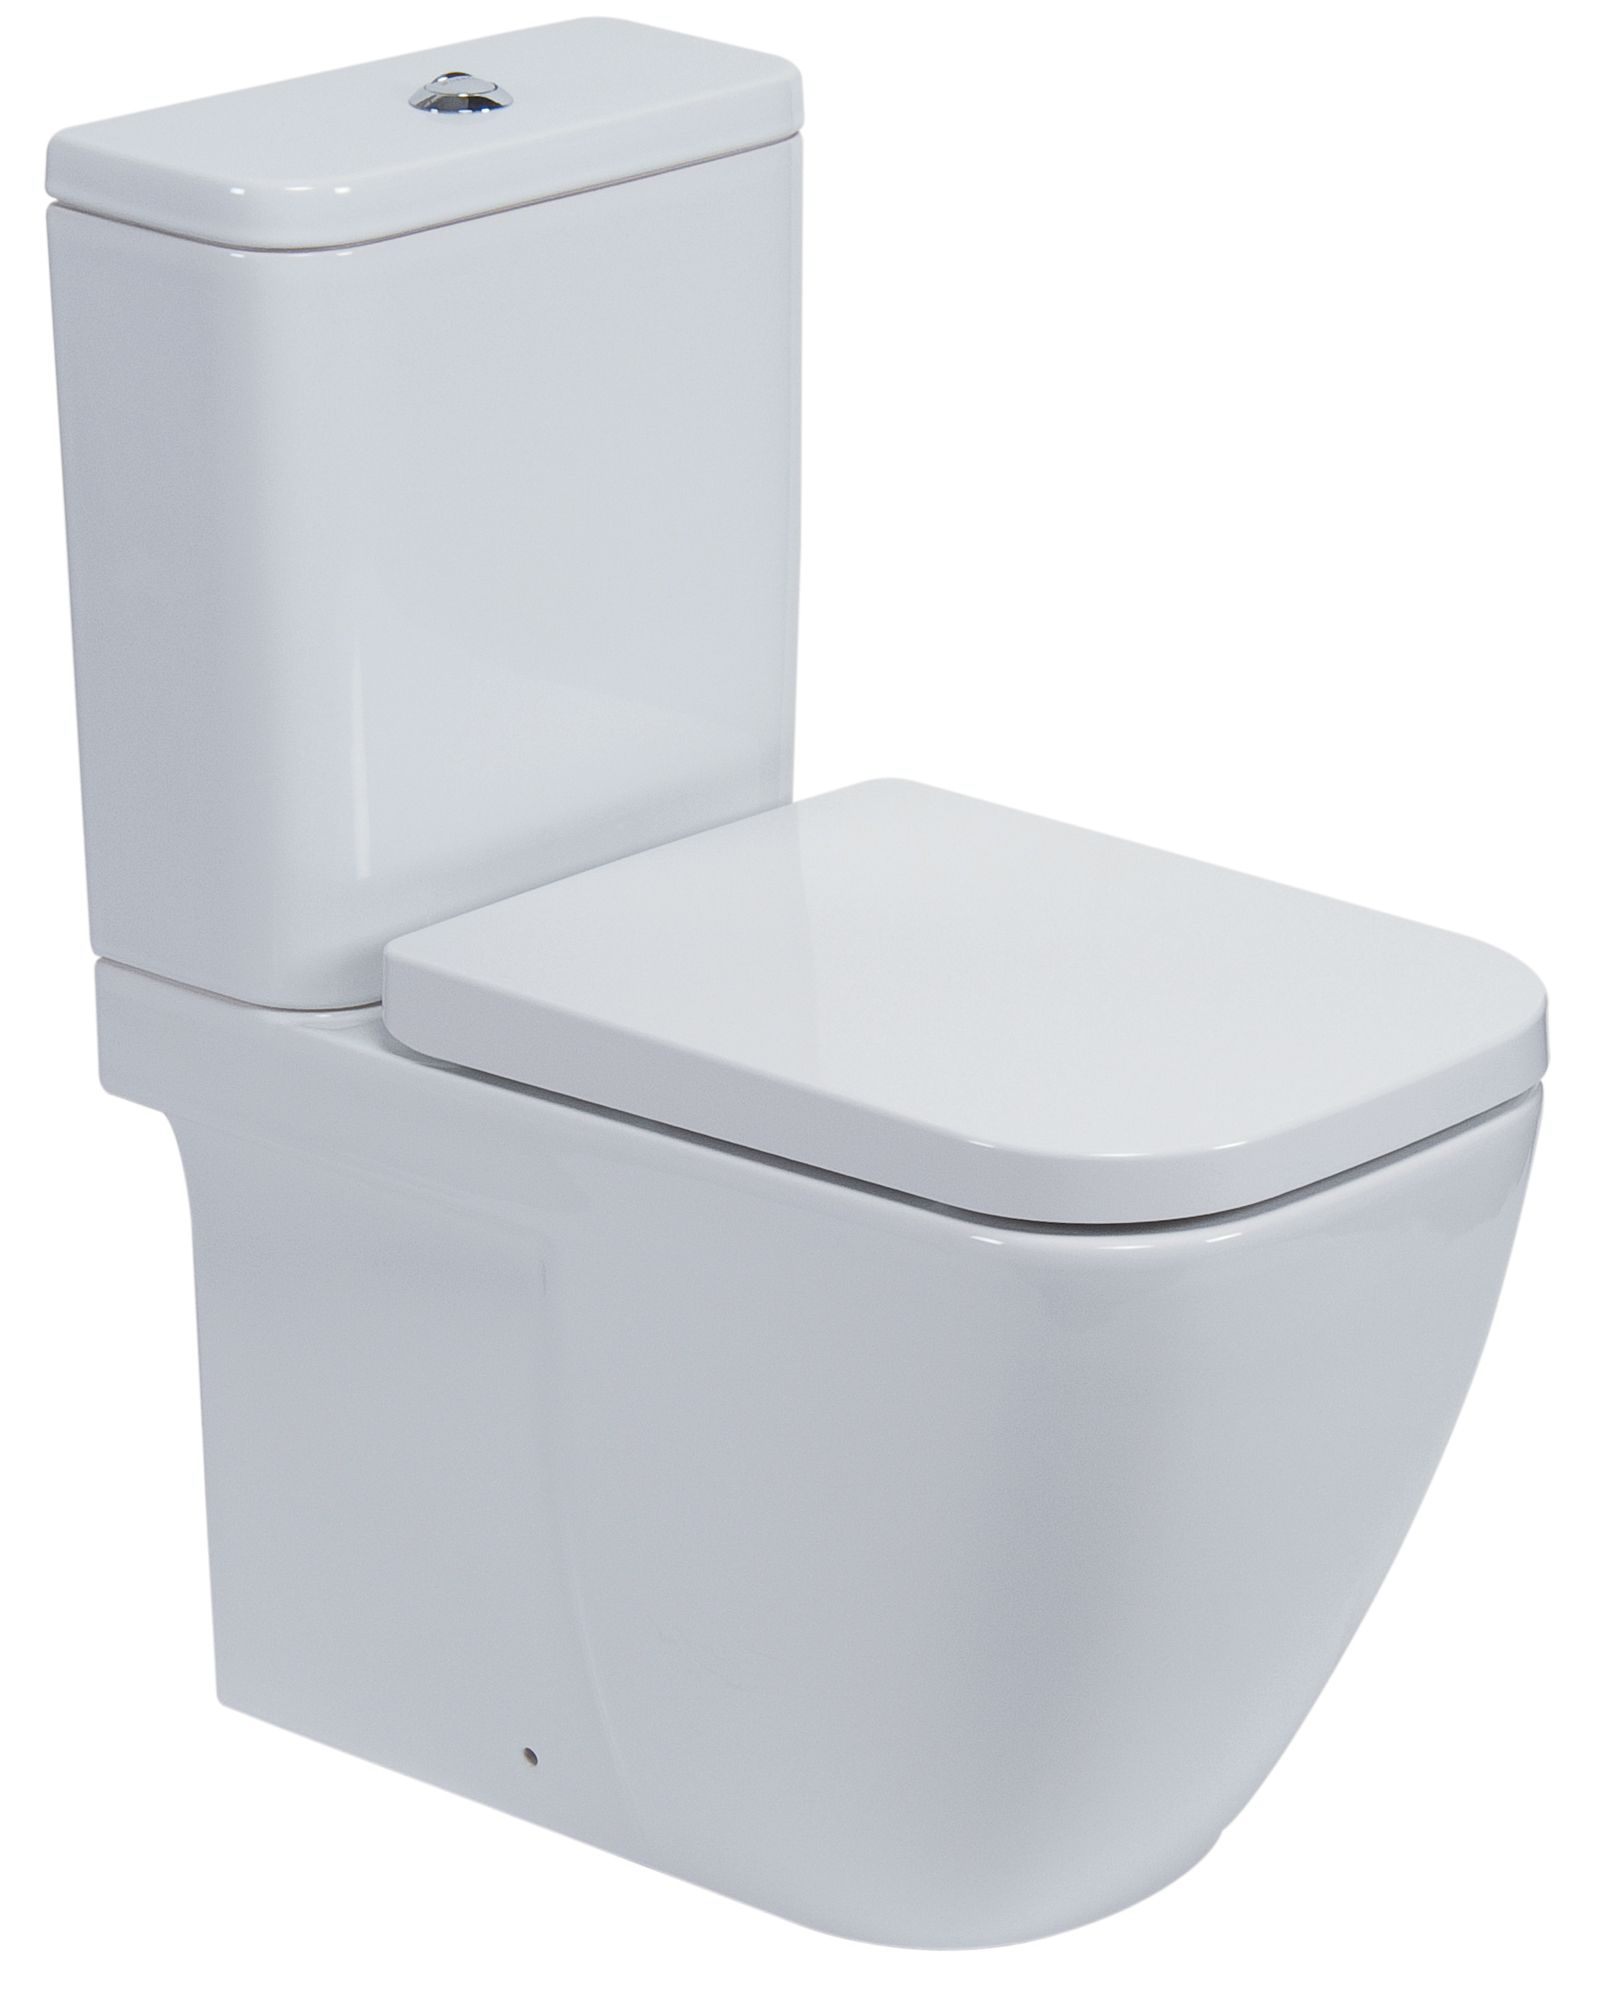 Strange Cooke Lewis Clancy Modern Close Coupled Toilet With Soft Close Seat Departments Diy At Bq Creativecarmelina Interior Chair Design Creativecarmelinacom